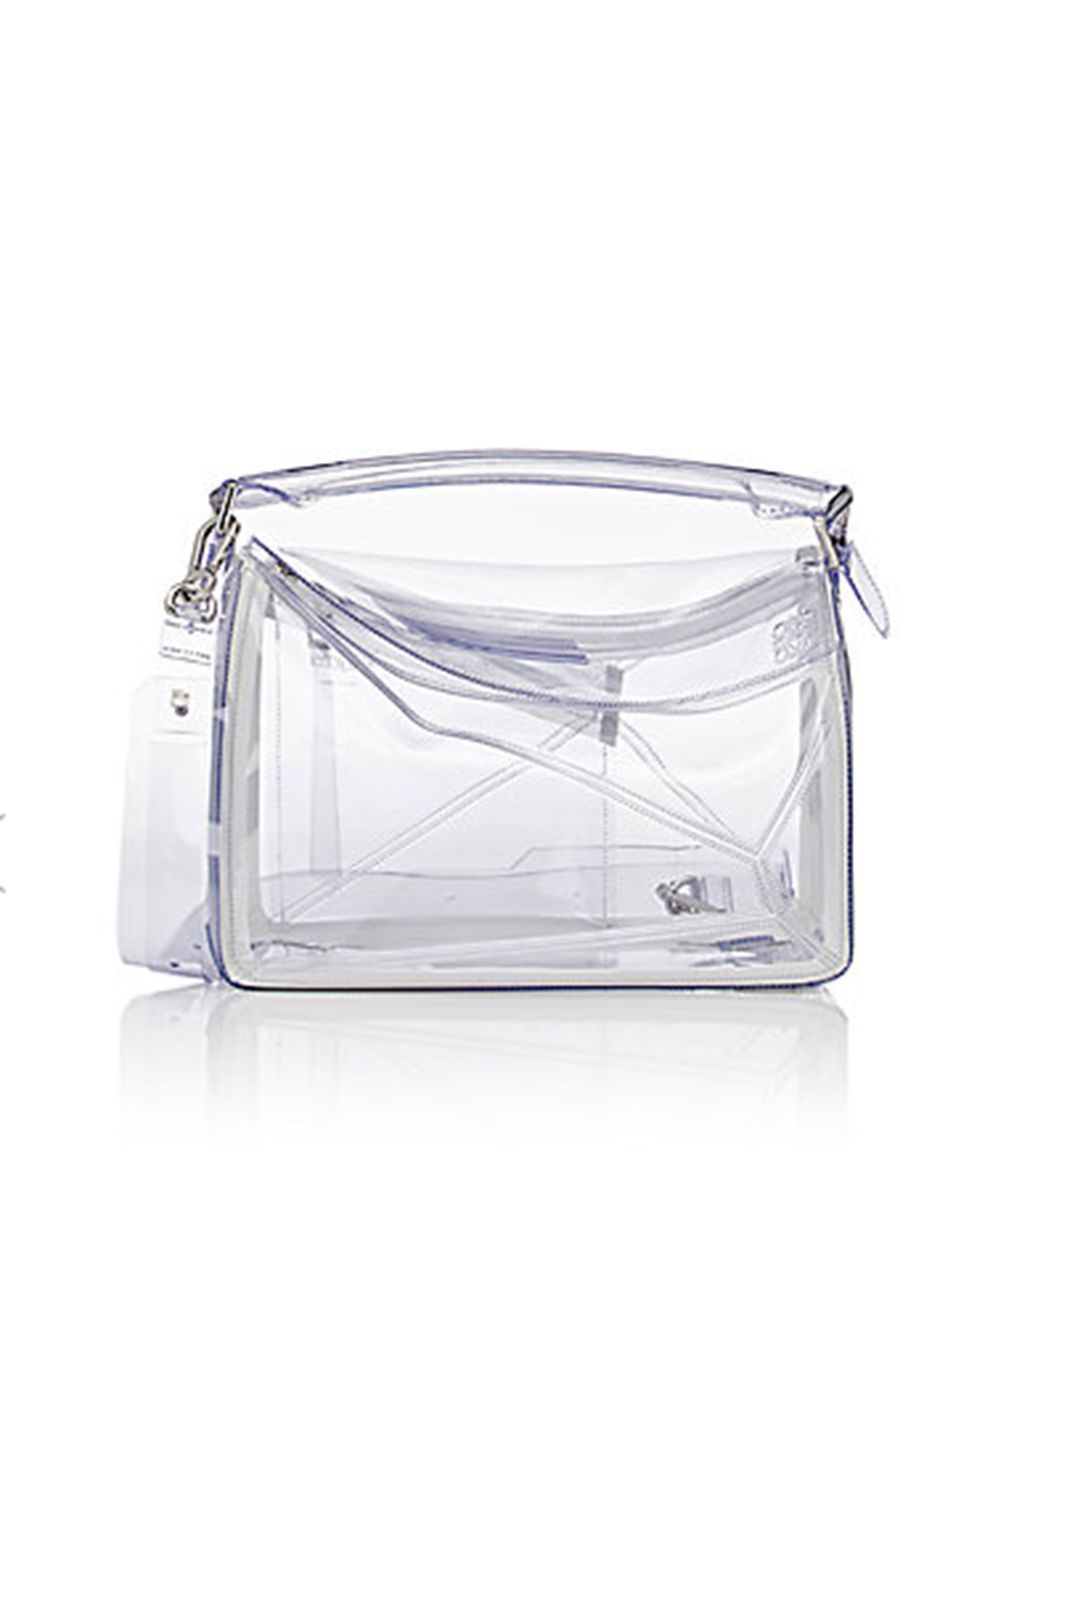 The Latest Accessories Trends You Need To Shop Now #refinery29  http://www.refinery29.com/2016/09/123473/accessories-trends-fall-2016-polyvore#slide-1  Clear HandbagsRemember that transparent backpack you had in middle school? That trend's all grown up and even dipping into the luxury realm with this number by Loewe.Loewe Puzzle Shoulder Bag, $1,550, available at Barneys New York....